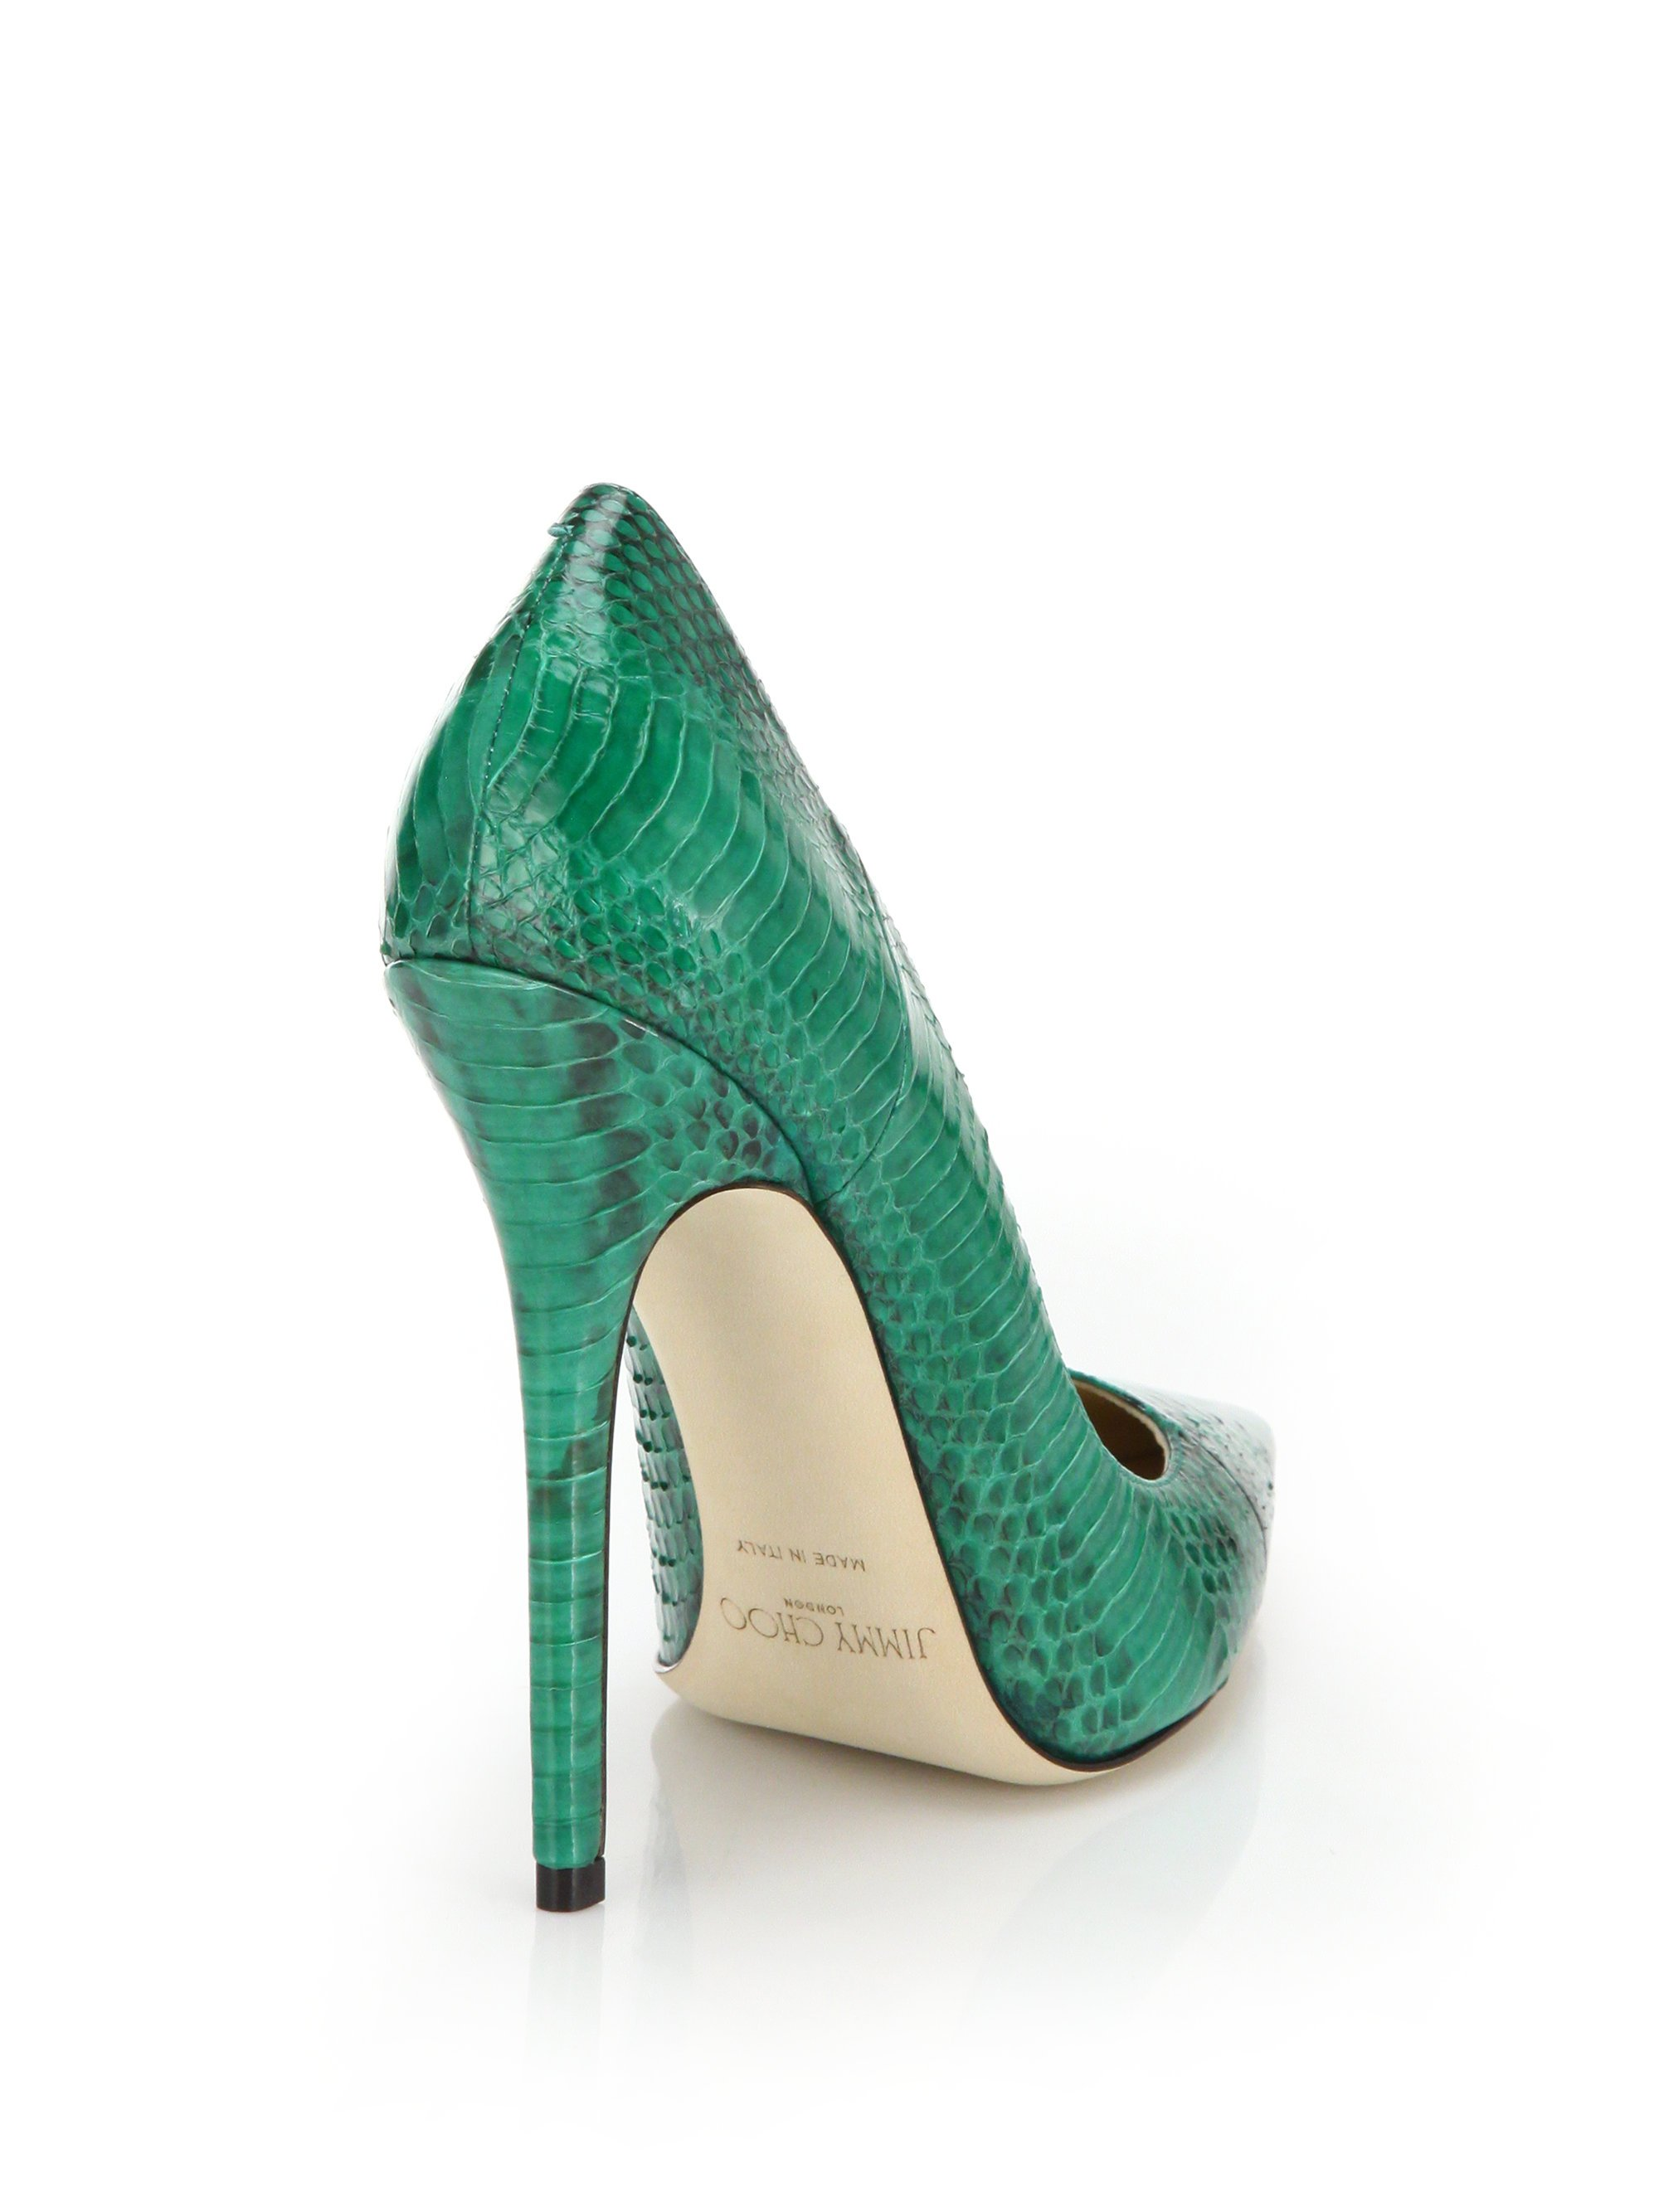 a85a2e6c4bd7 Lyst - Jimmy Choo Anouk Snakeskin Pointed-Toe Pumps in Green